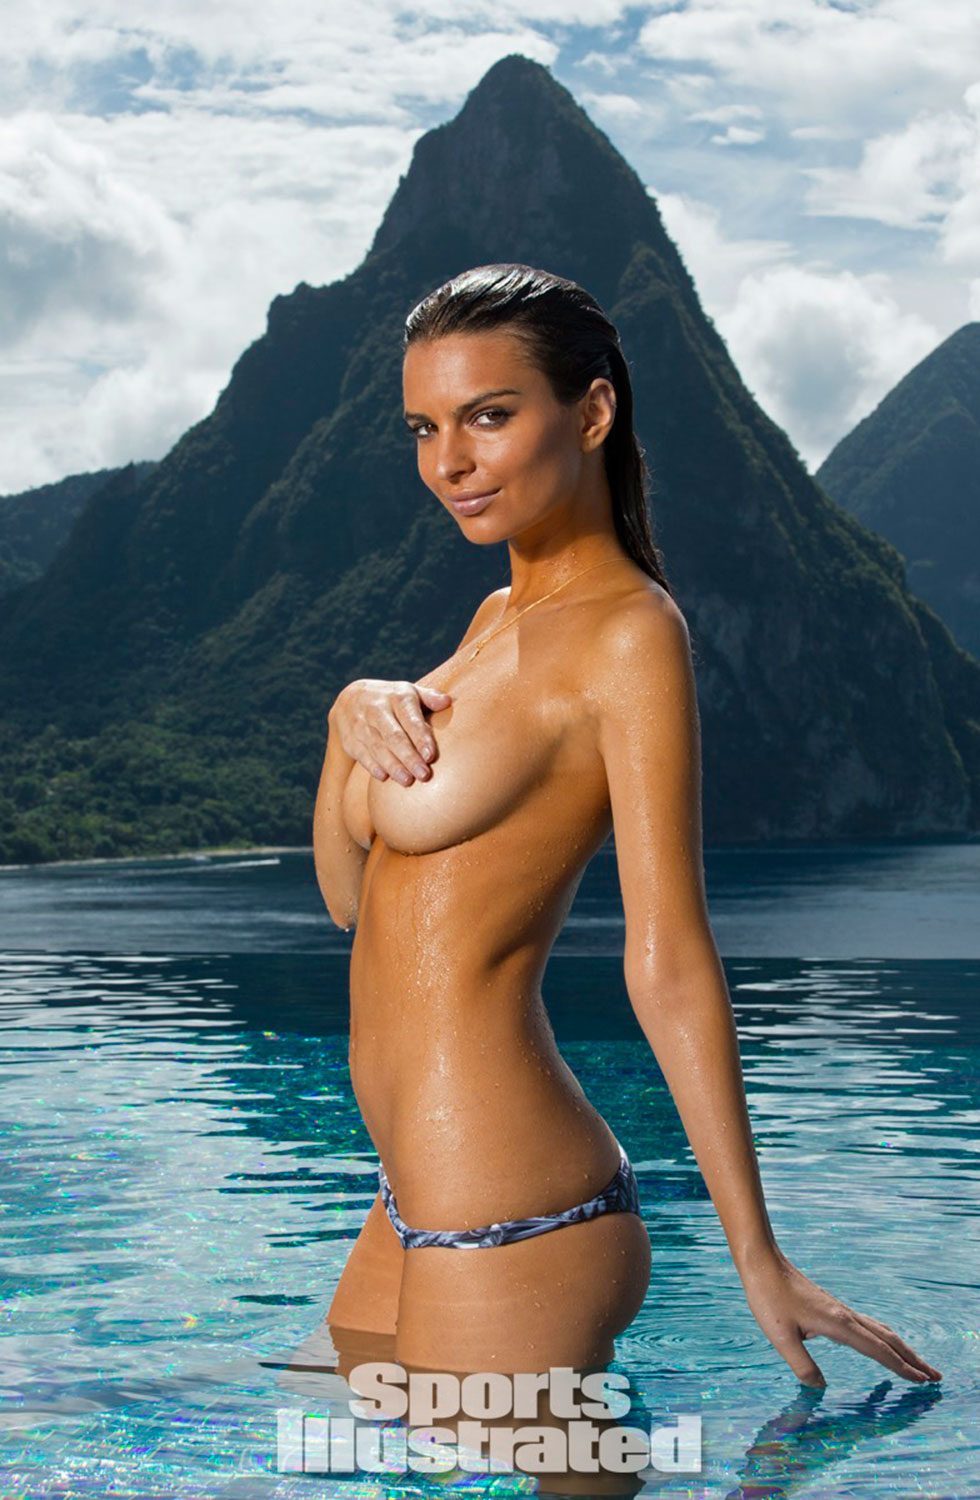 Emily-Ratajkowski-for-Sports-Illustrated-Swimsuit-Edition-2014_02